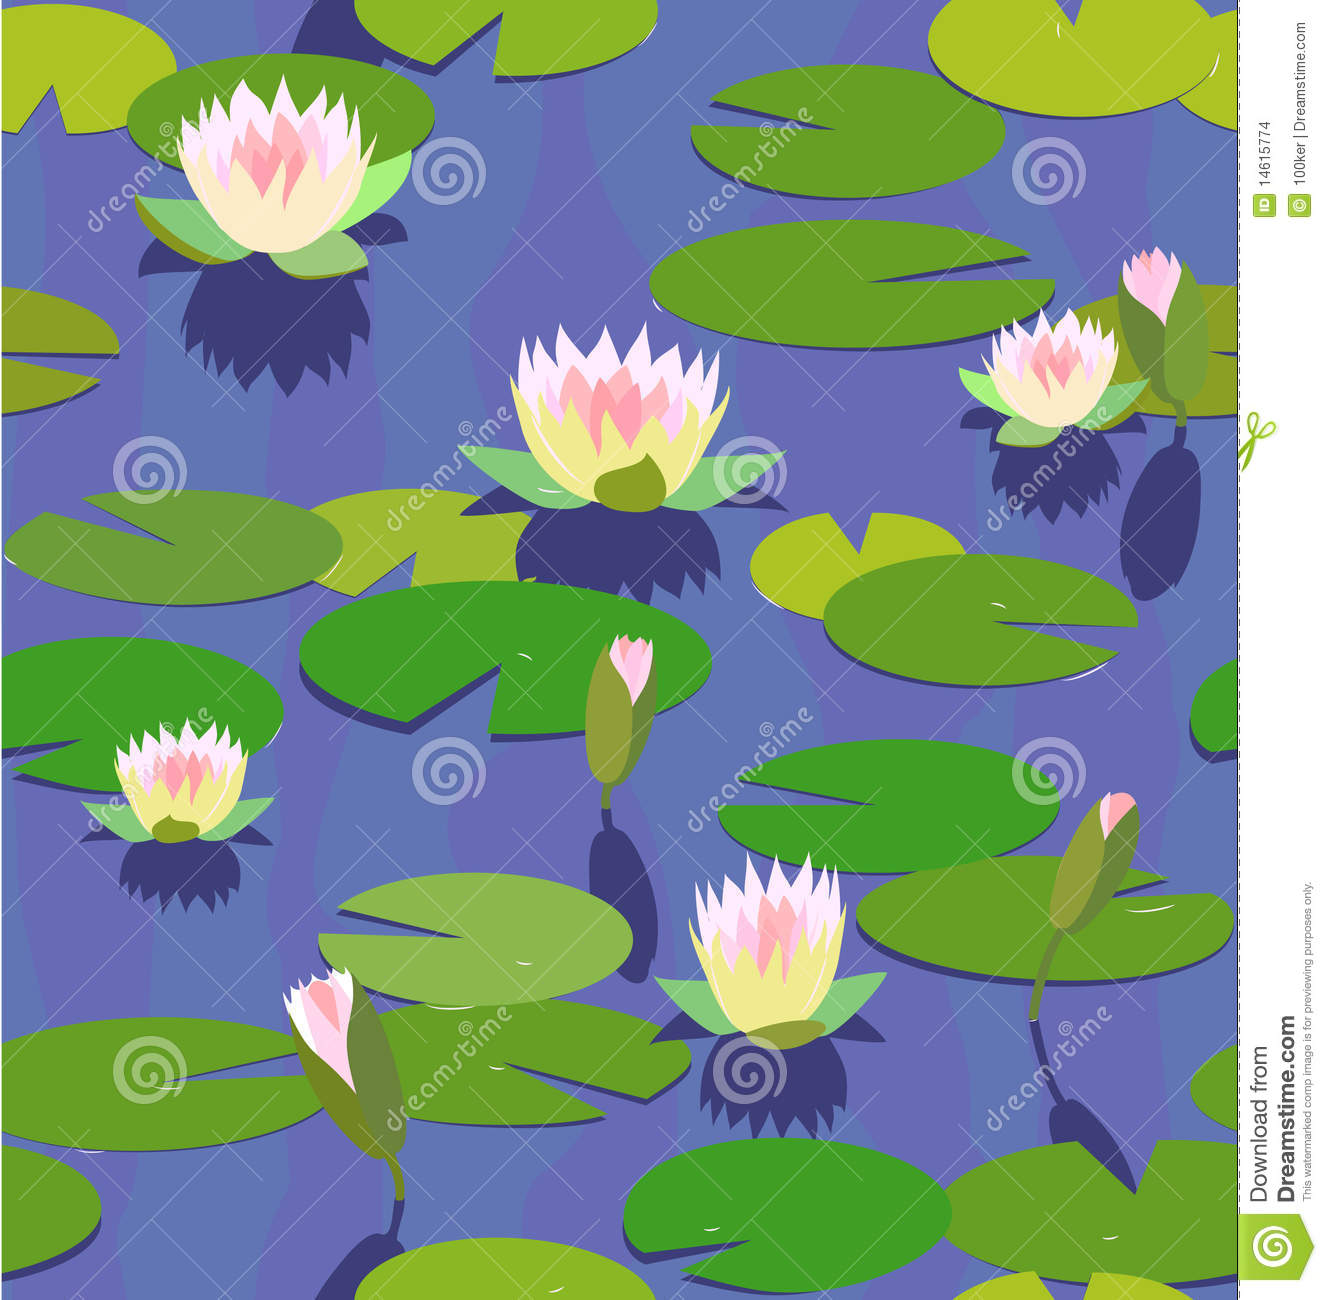 Free Animated Frog Wallpaper Water Lily In Pond Stock Vector Image Of Close Nature